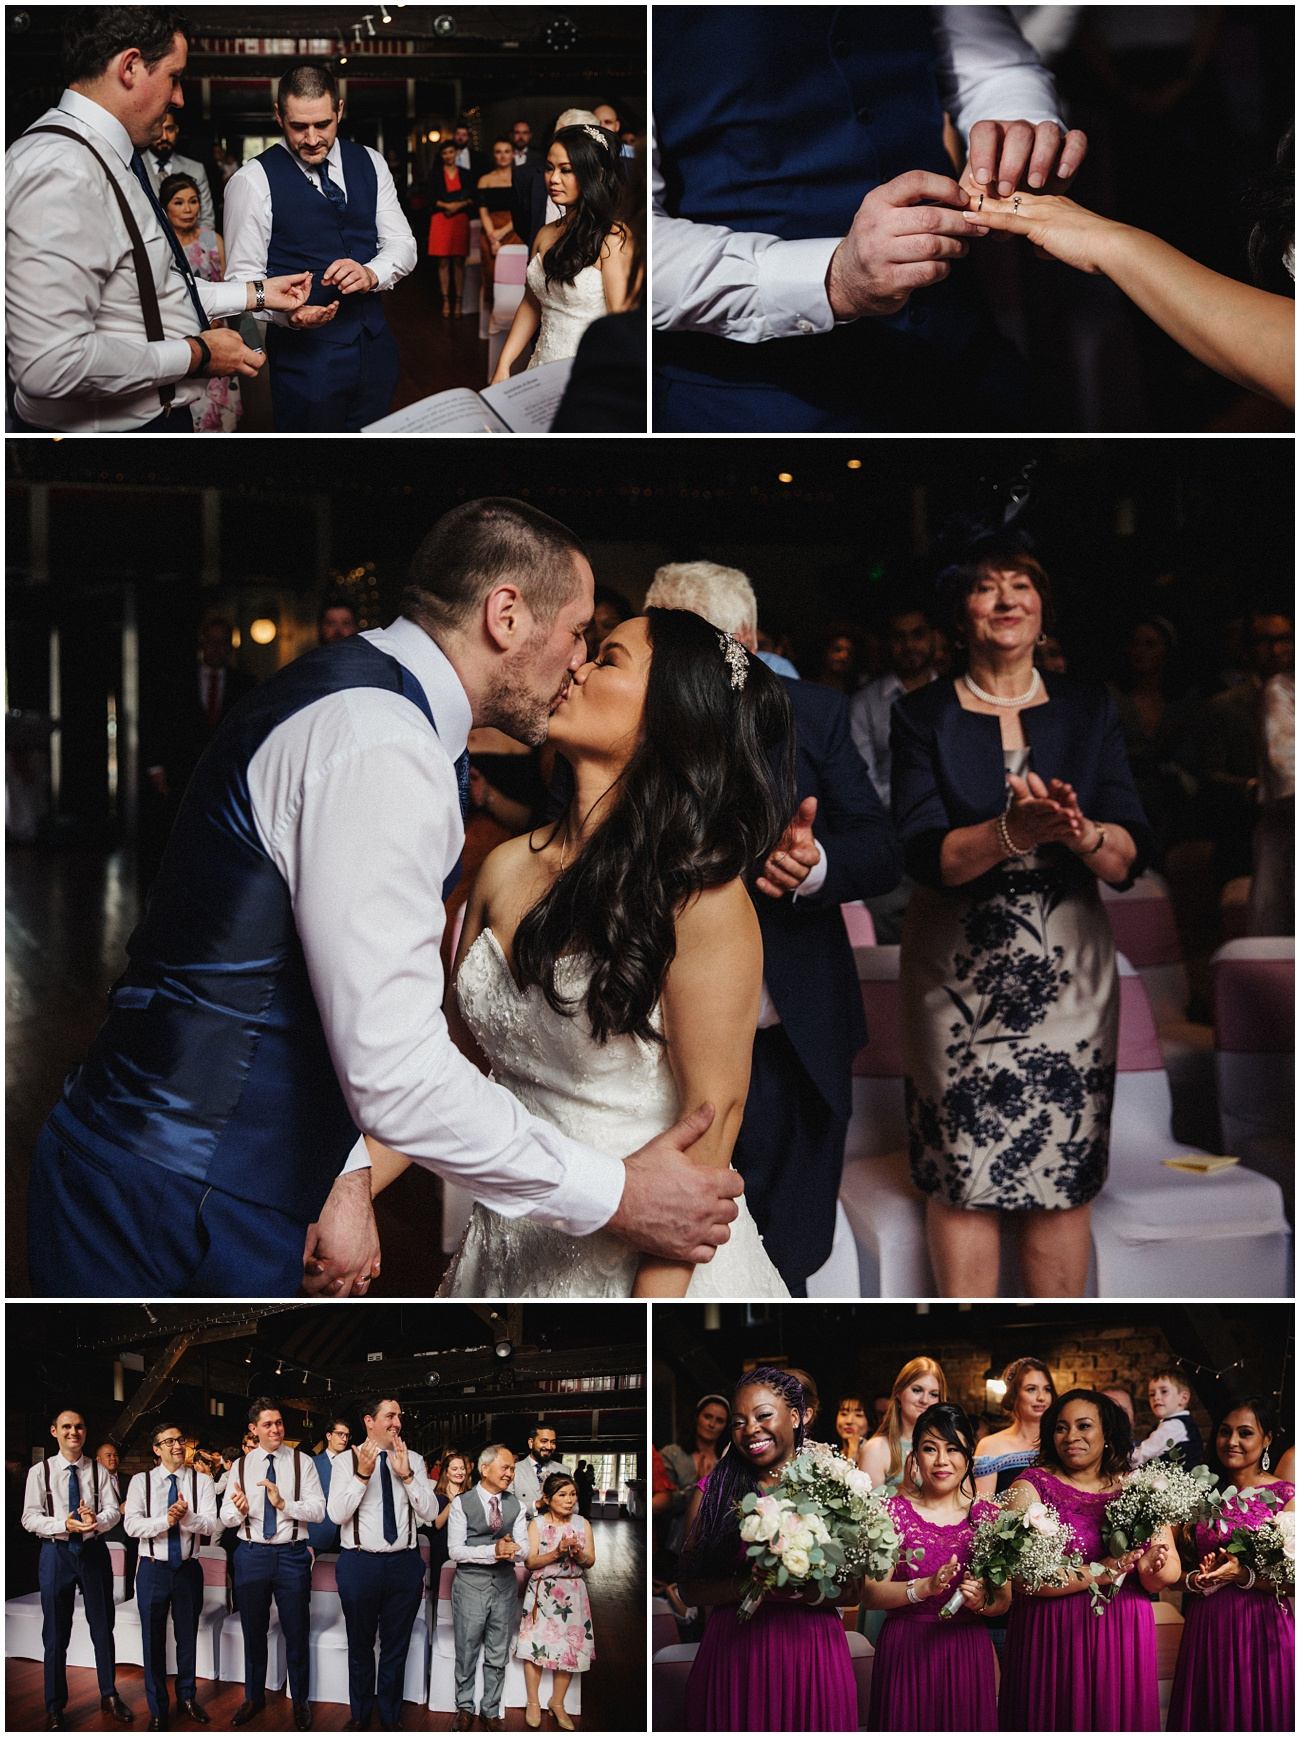 The exchange of the wedding rings and the first kiss at the couple tie the knot